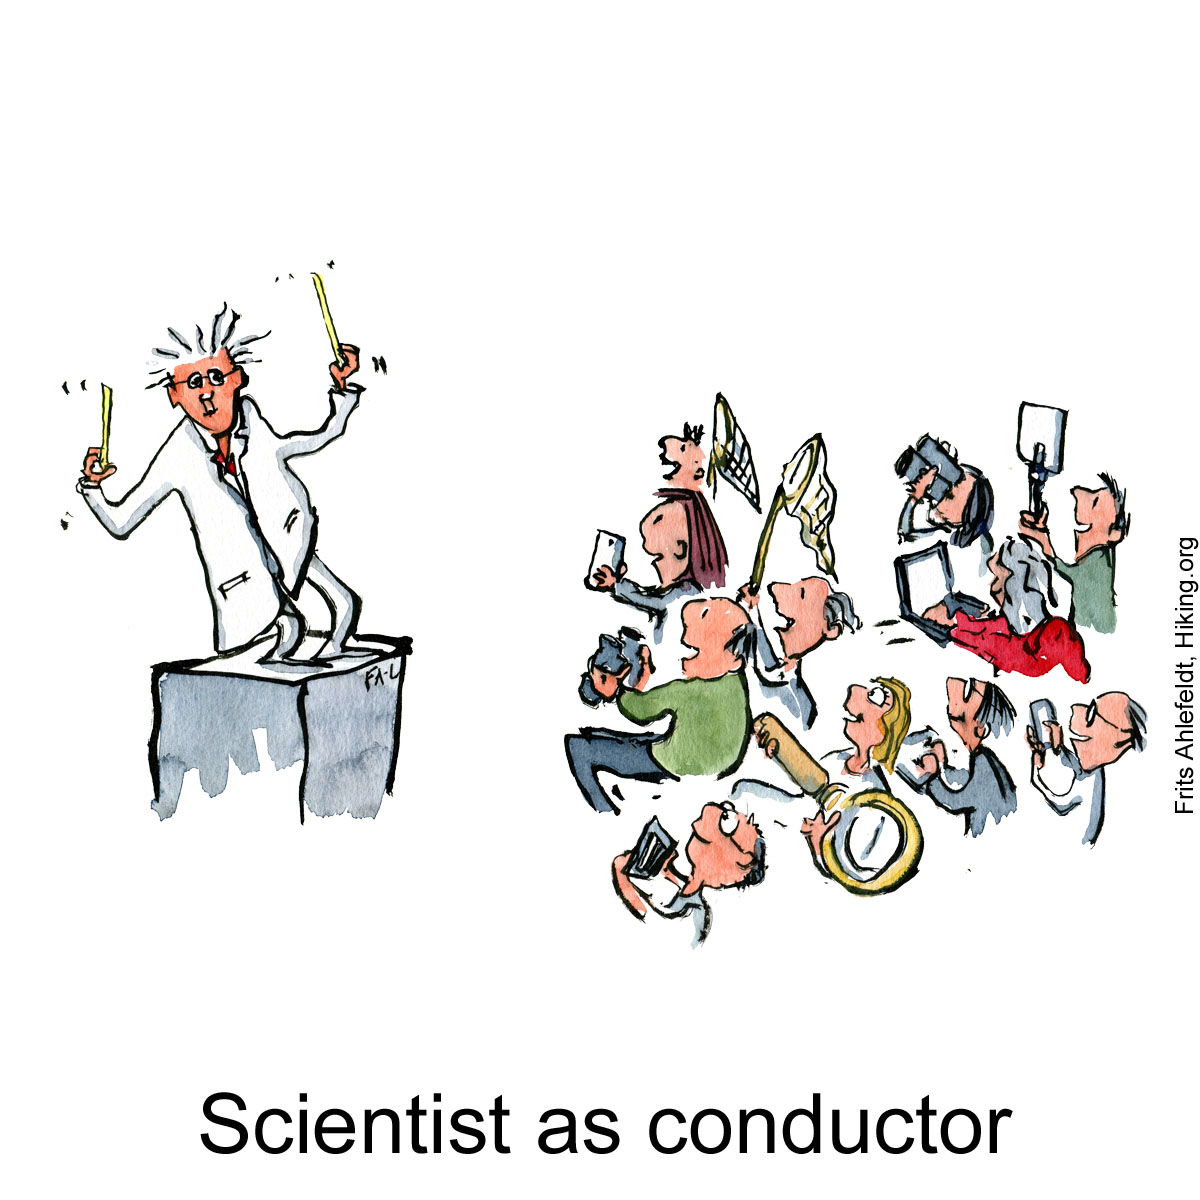 Drawing of a scientist as a music conductor. Illustration by Frits Ahlefeldt